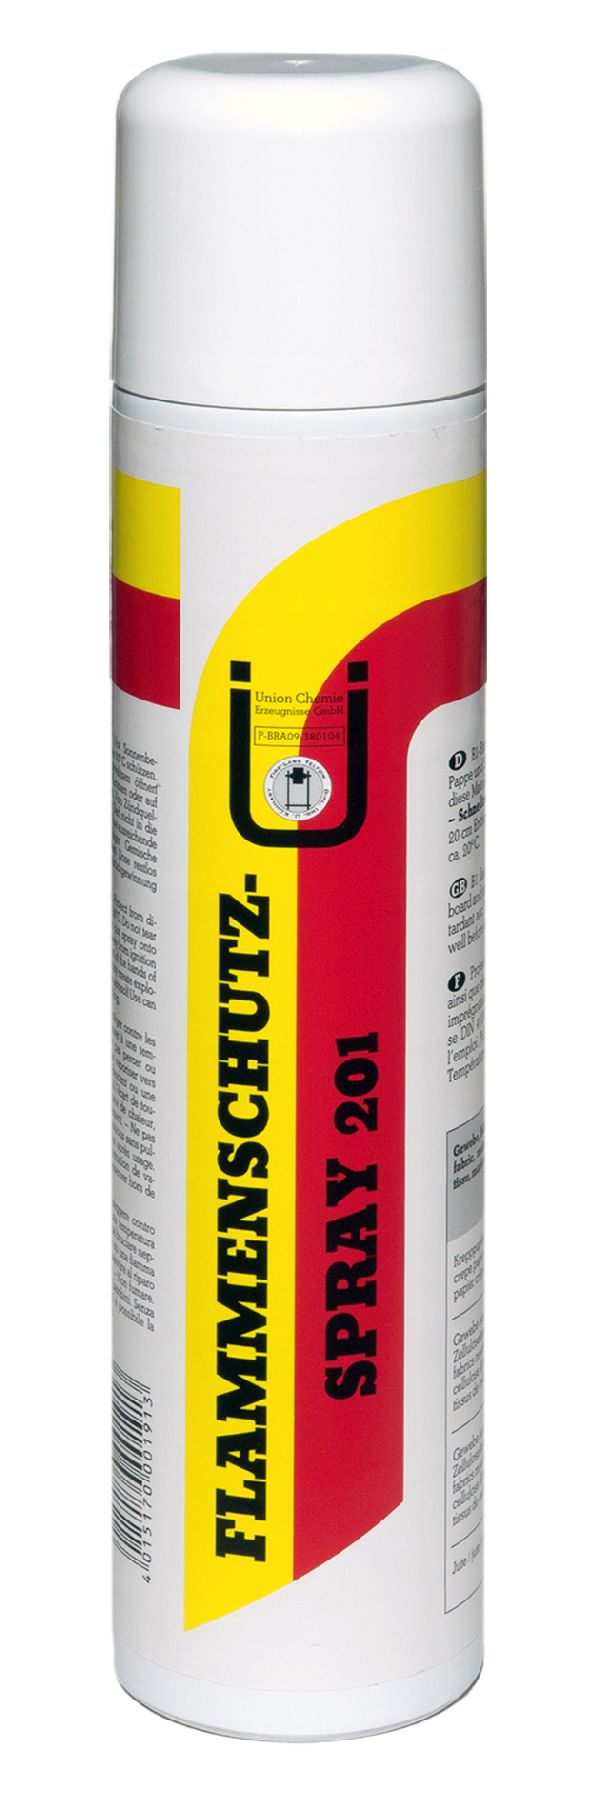 Flammenschutz Spray 400 ml